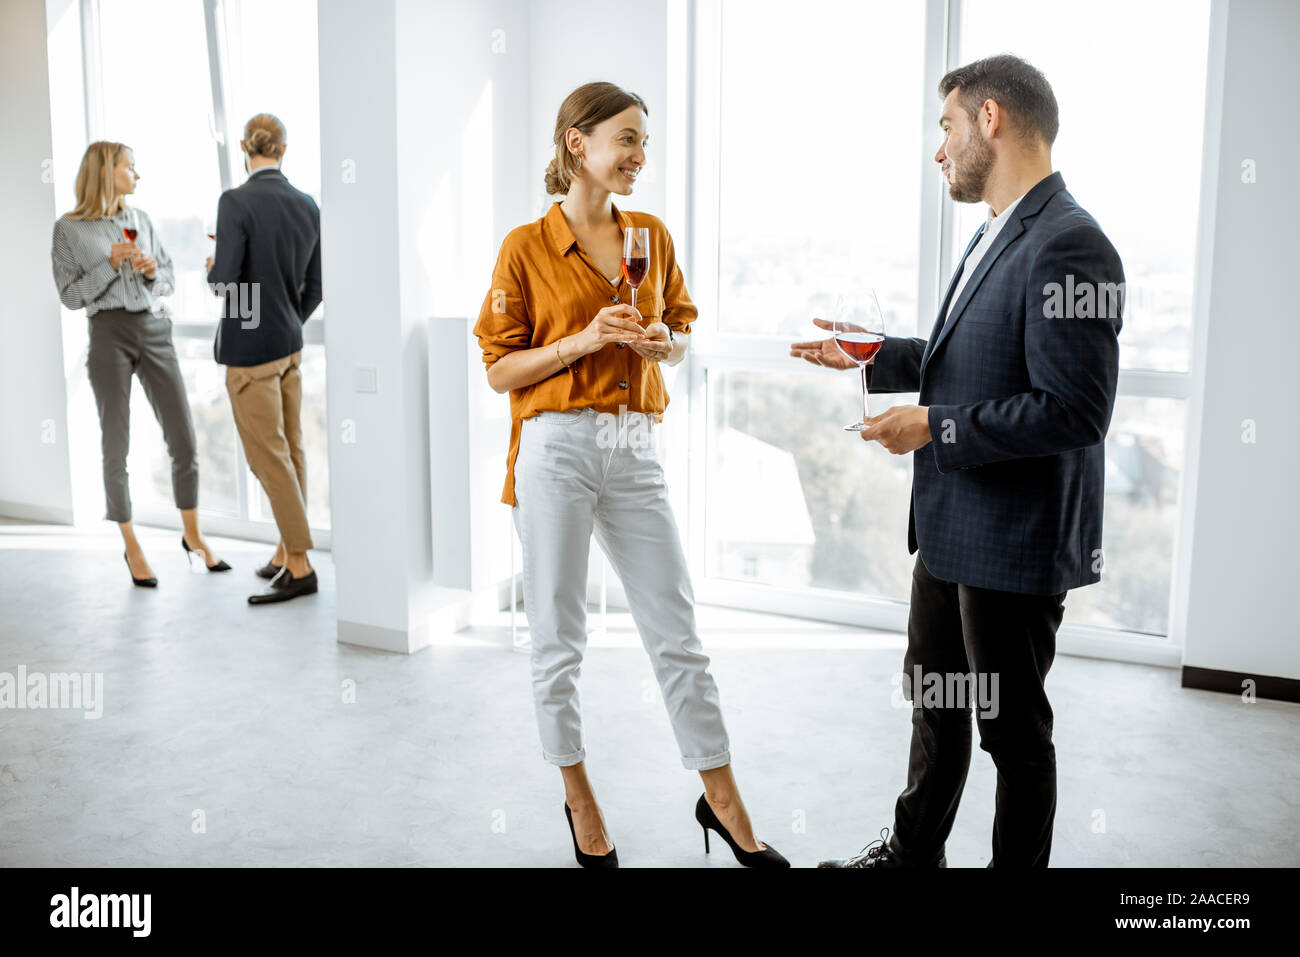 Young elegantly dressed people meeting in the white hallway or showroom, talking and drinking wine during some informal event Stock Photo